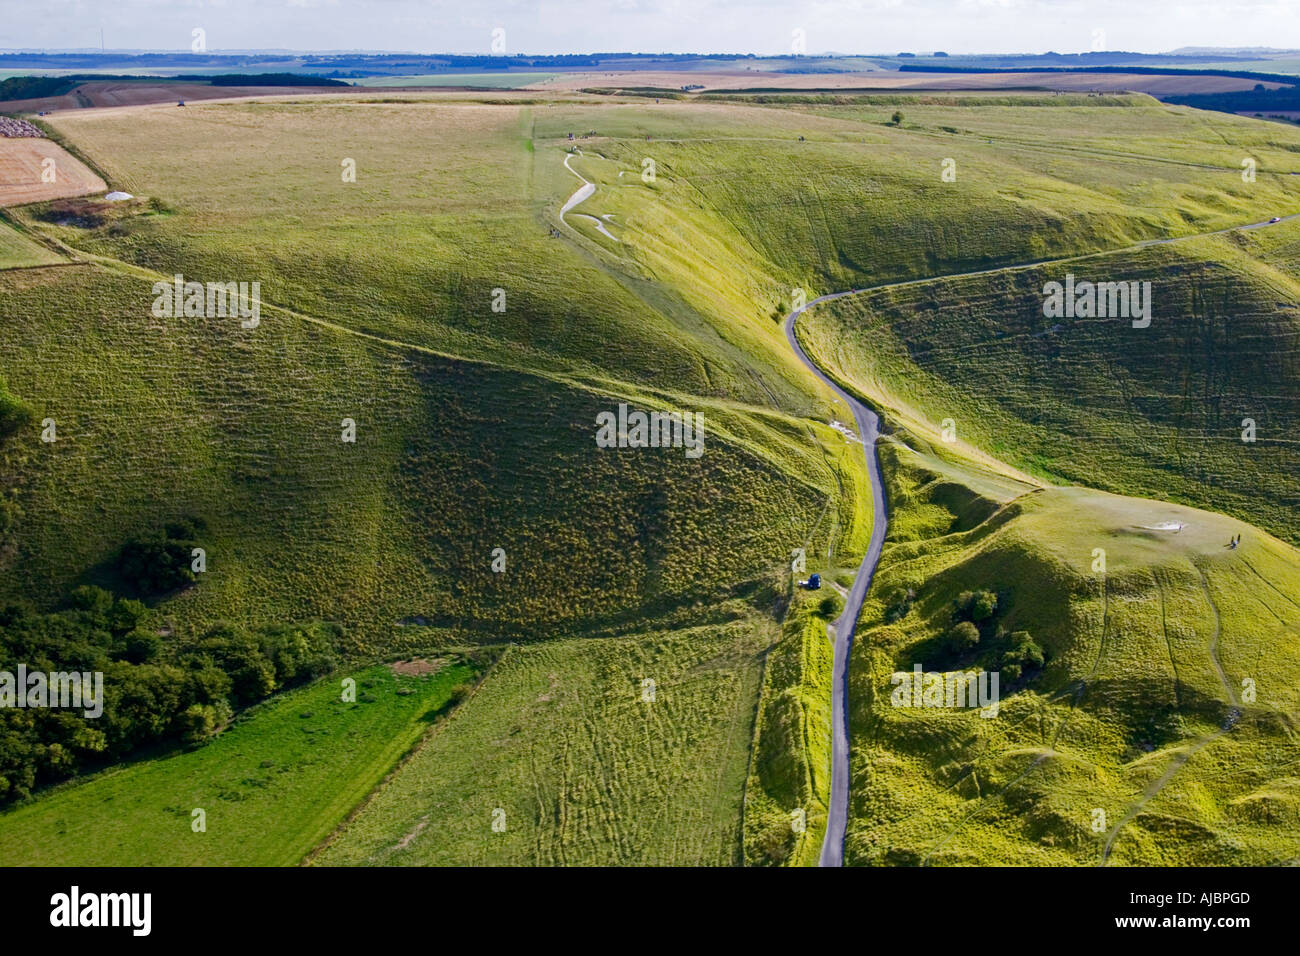 The ancient White Horse chalk figure and Dragon Hill near Uffington Oxfordshire England from the air JMH1710 Stock Photo